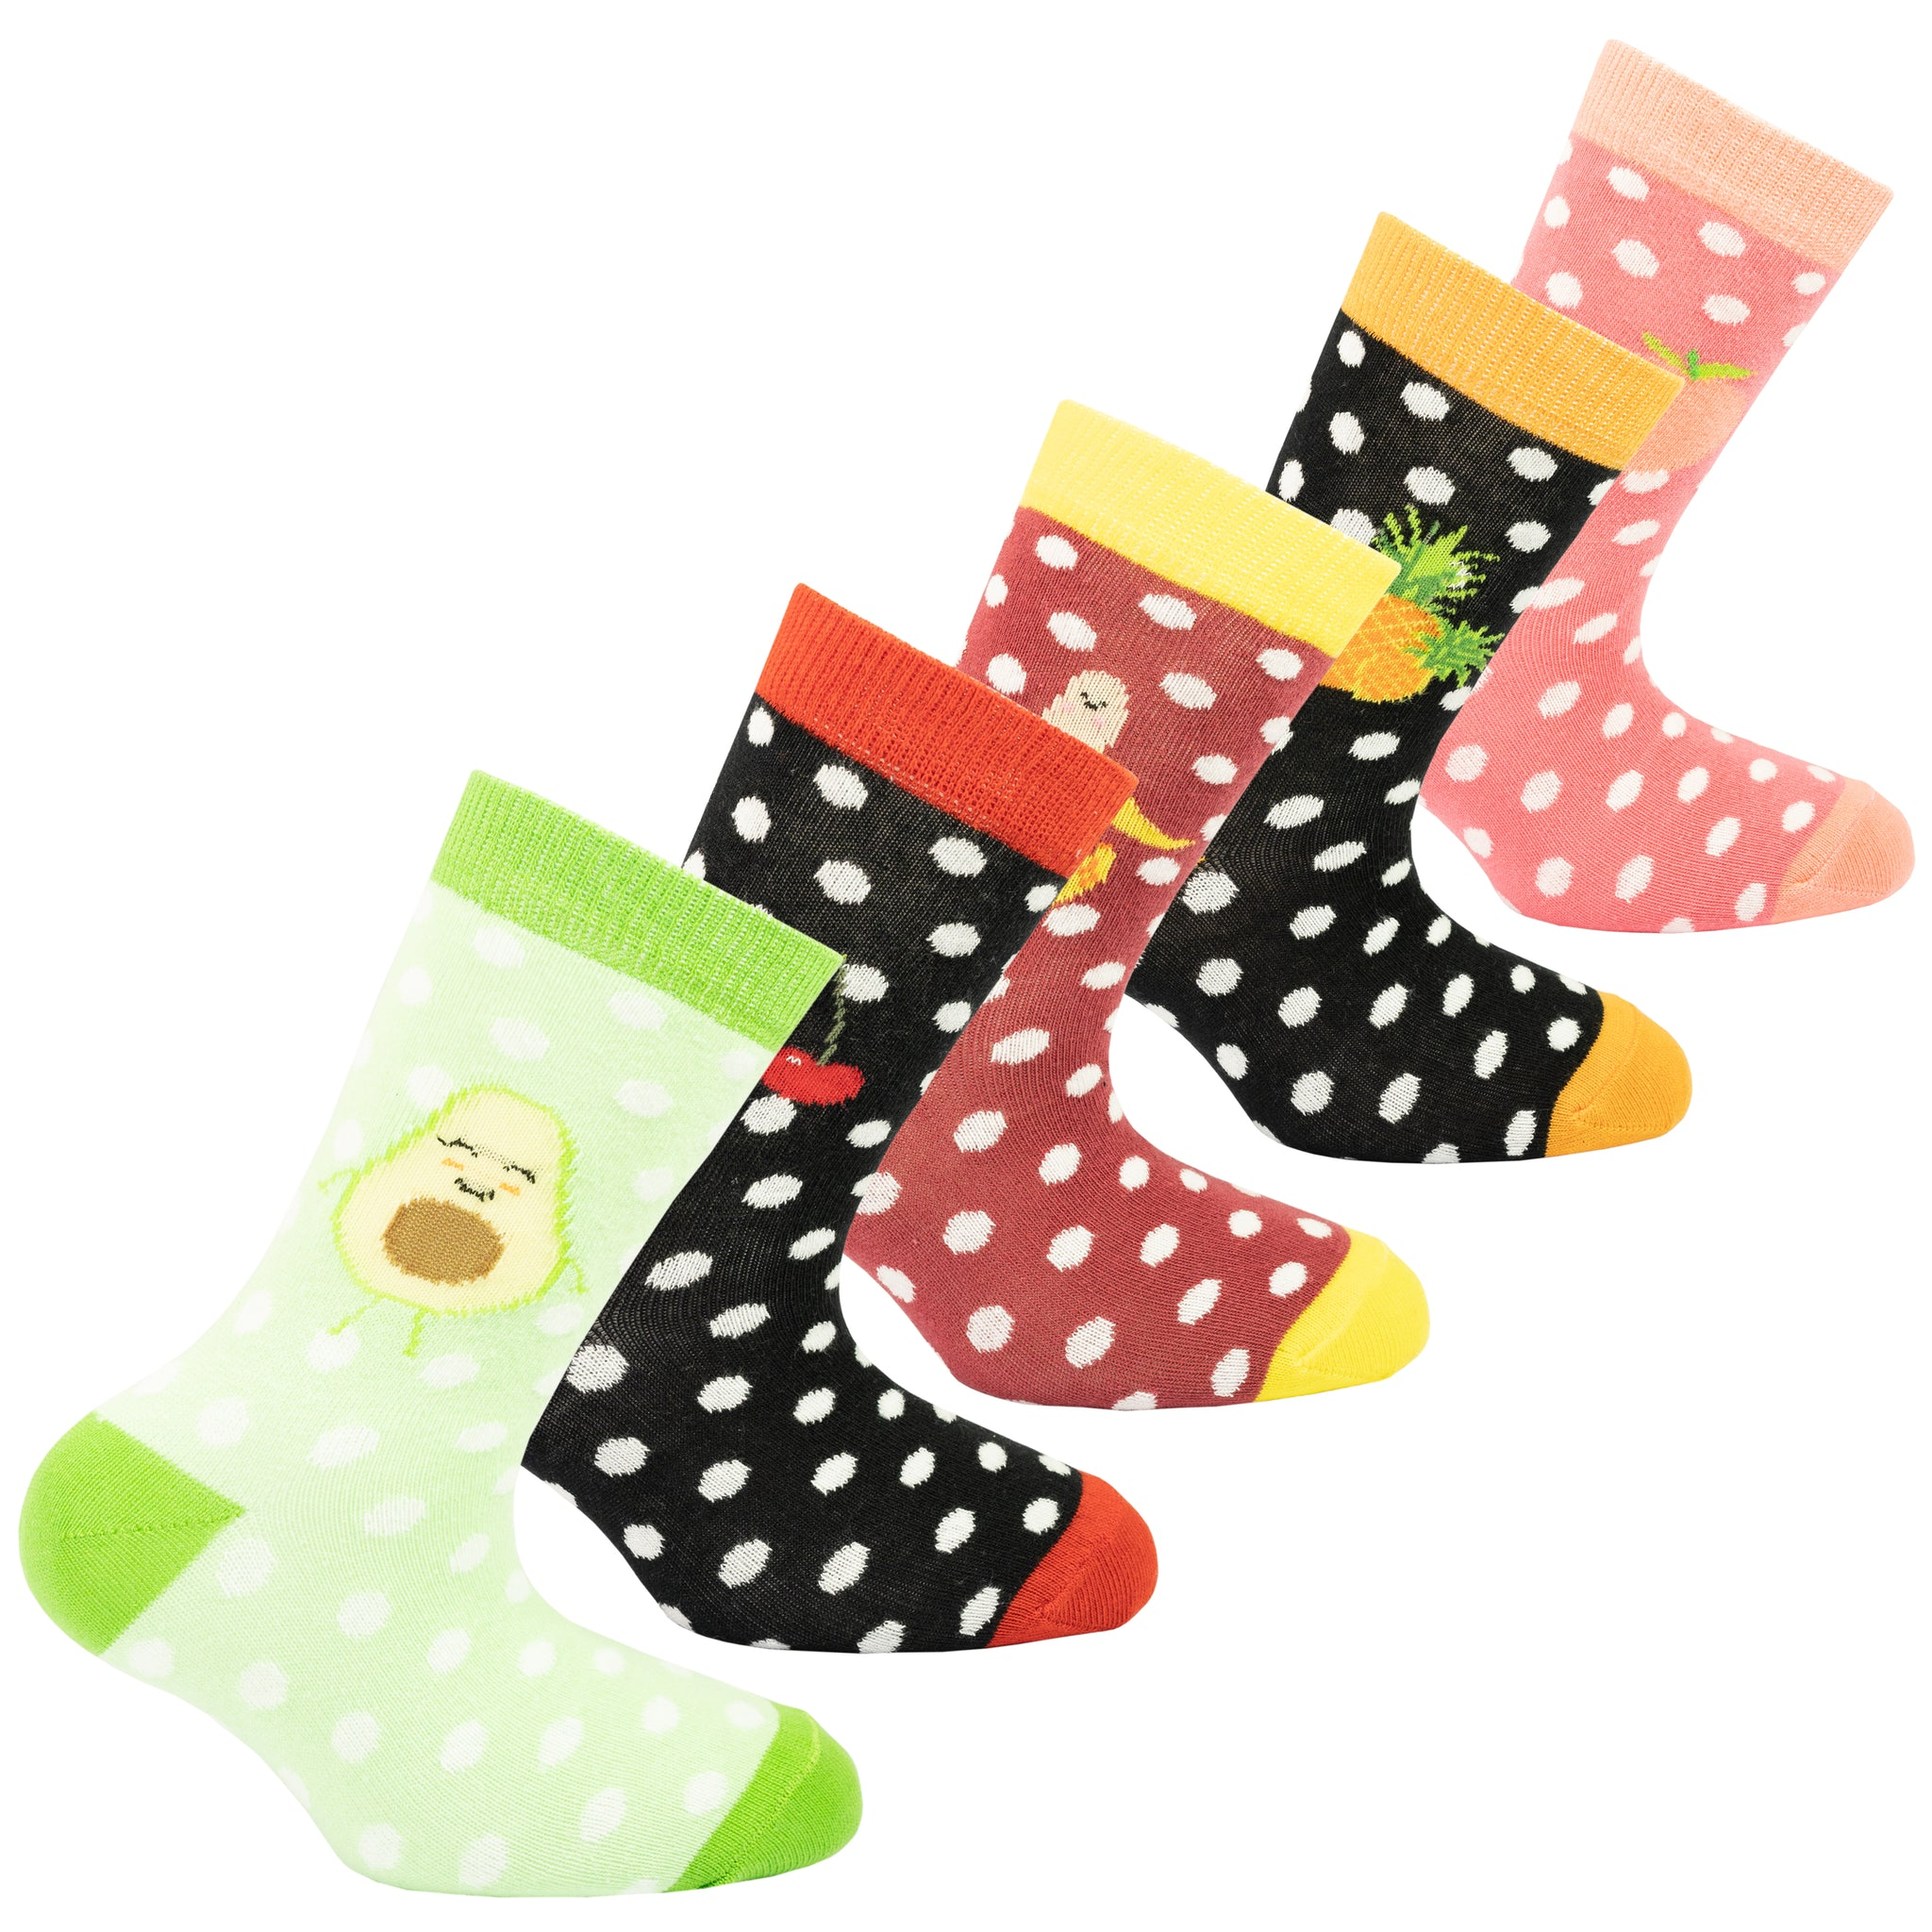 Kids Delightful Fruits Socks colorful